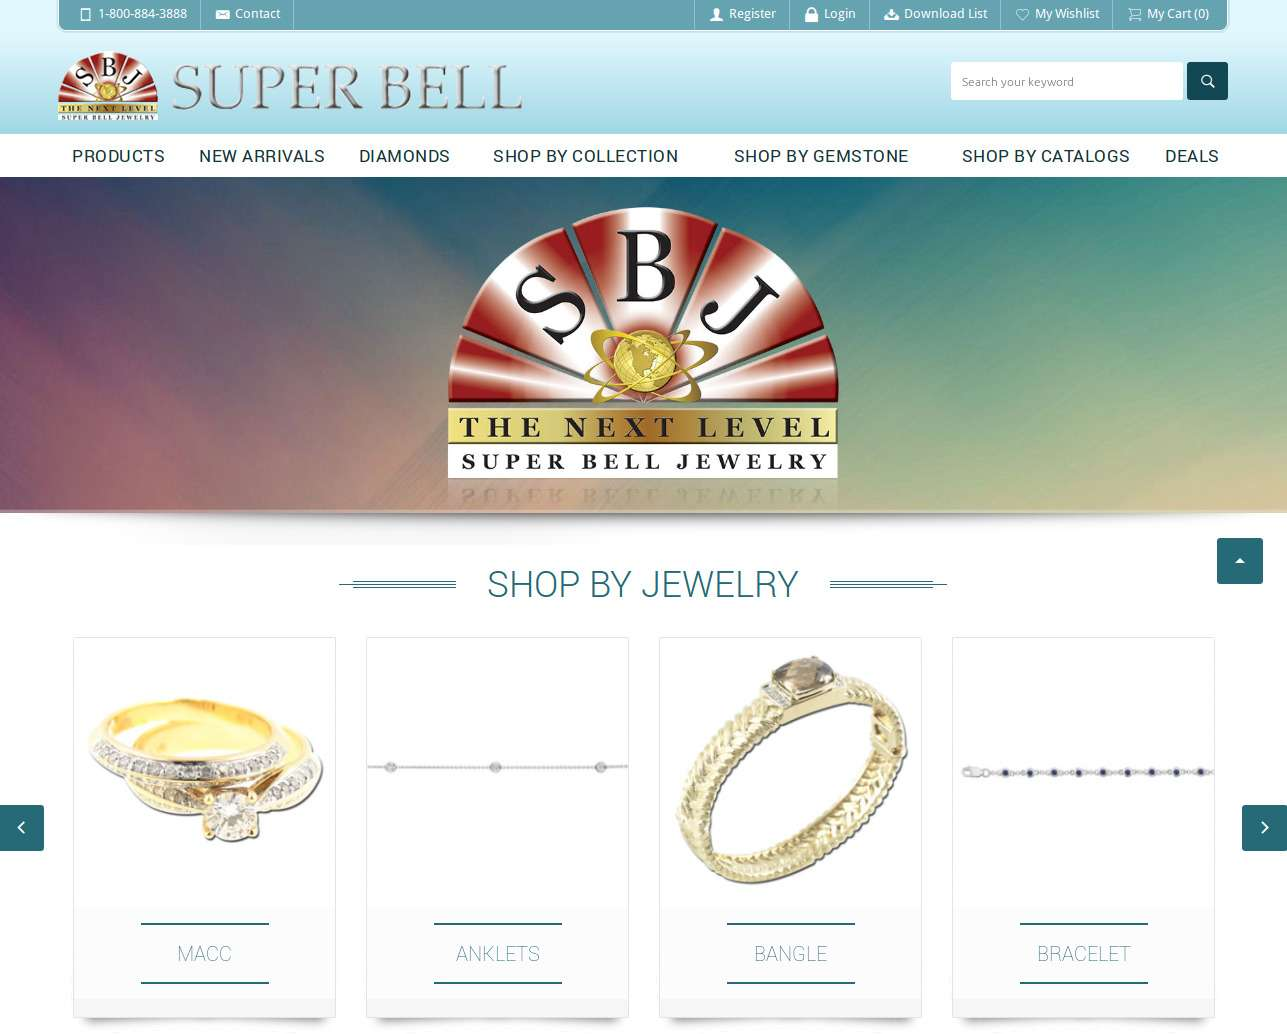 Super Bell Jewelry